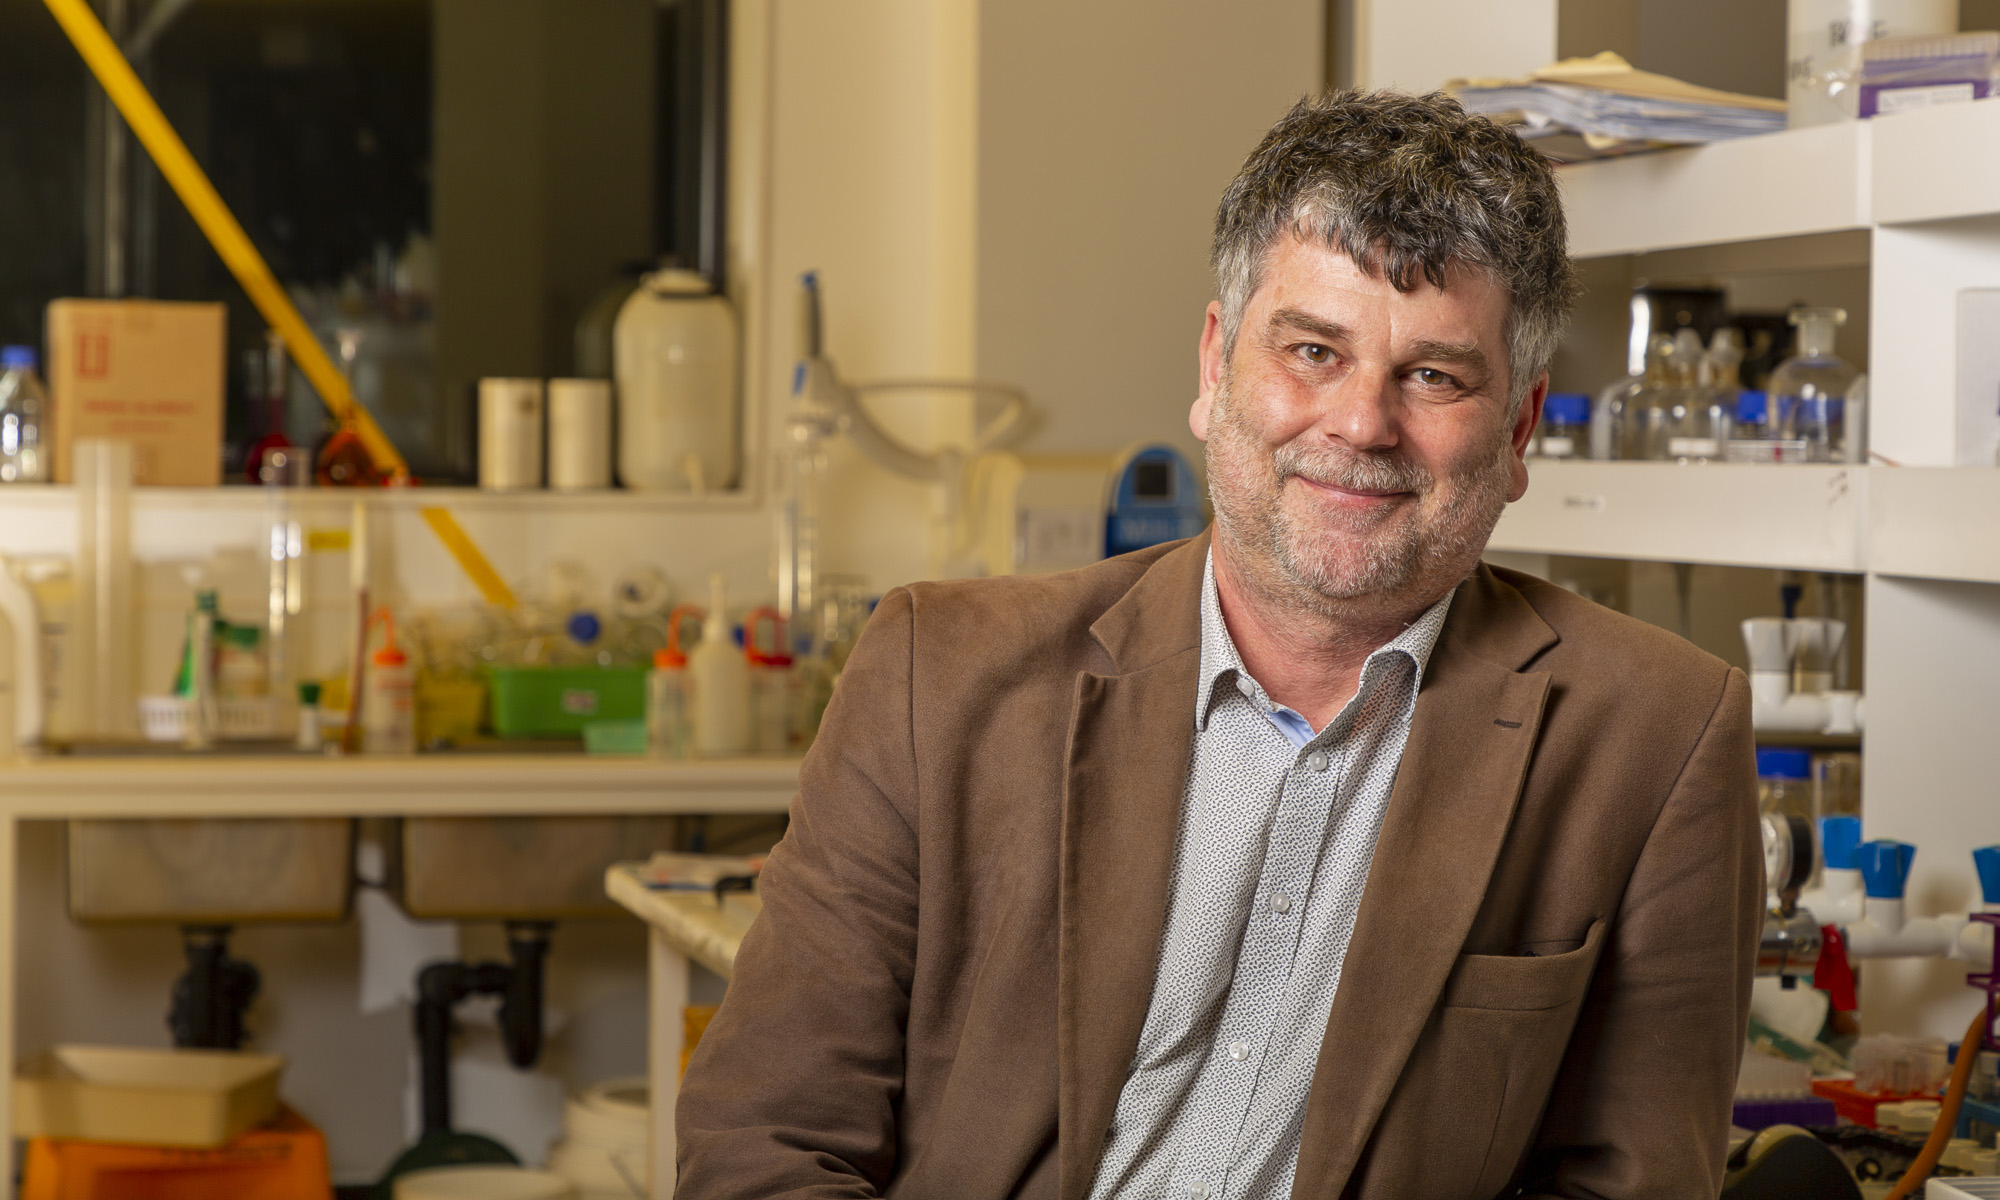 Professor Christian Doerig said the latest findings were the result of a long and productive global research collaboration.